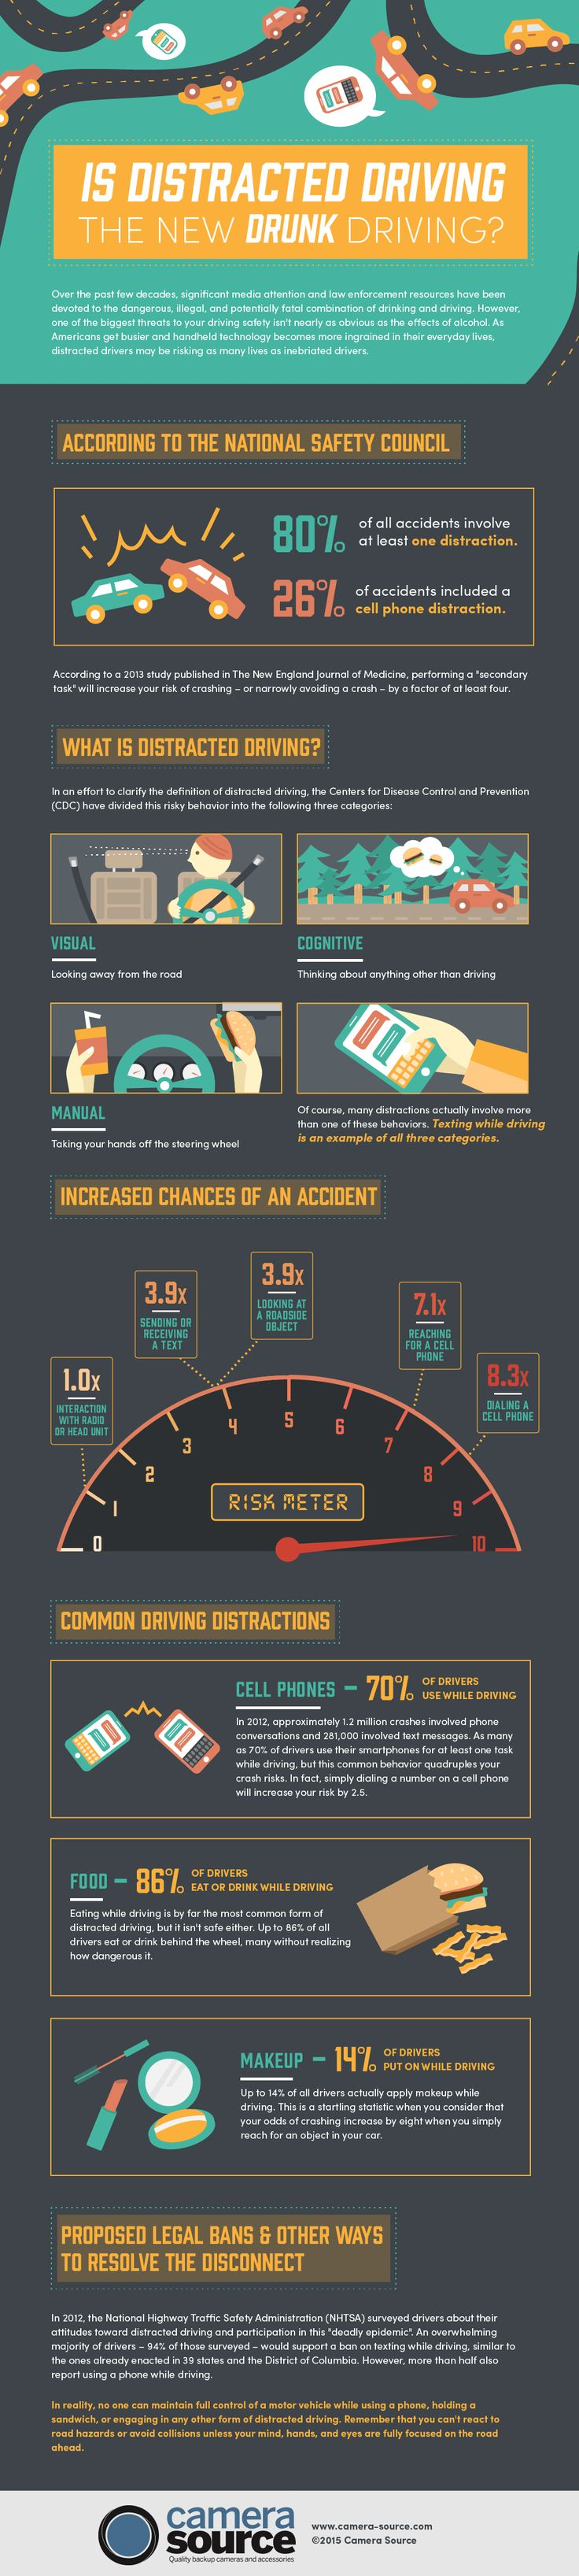 Is distracted driving the new drunk driving infographic